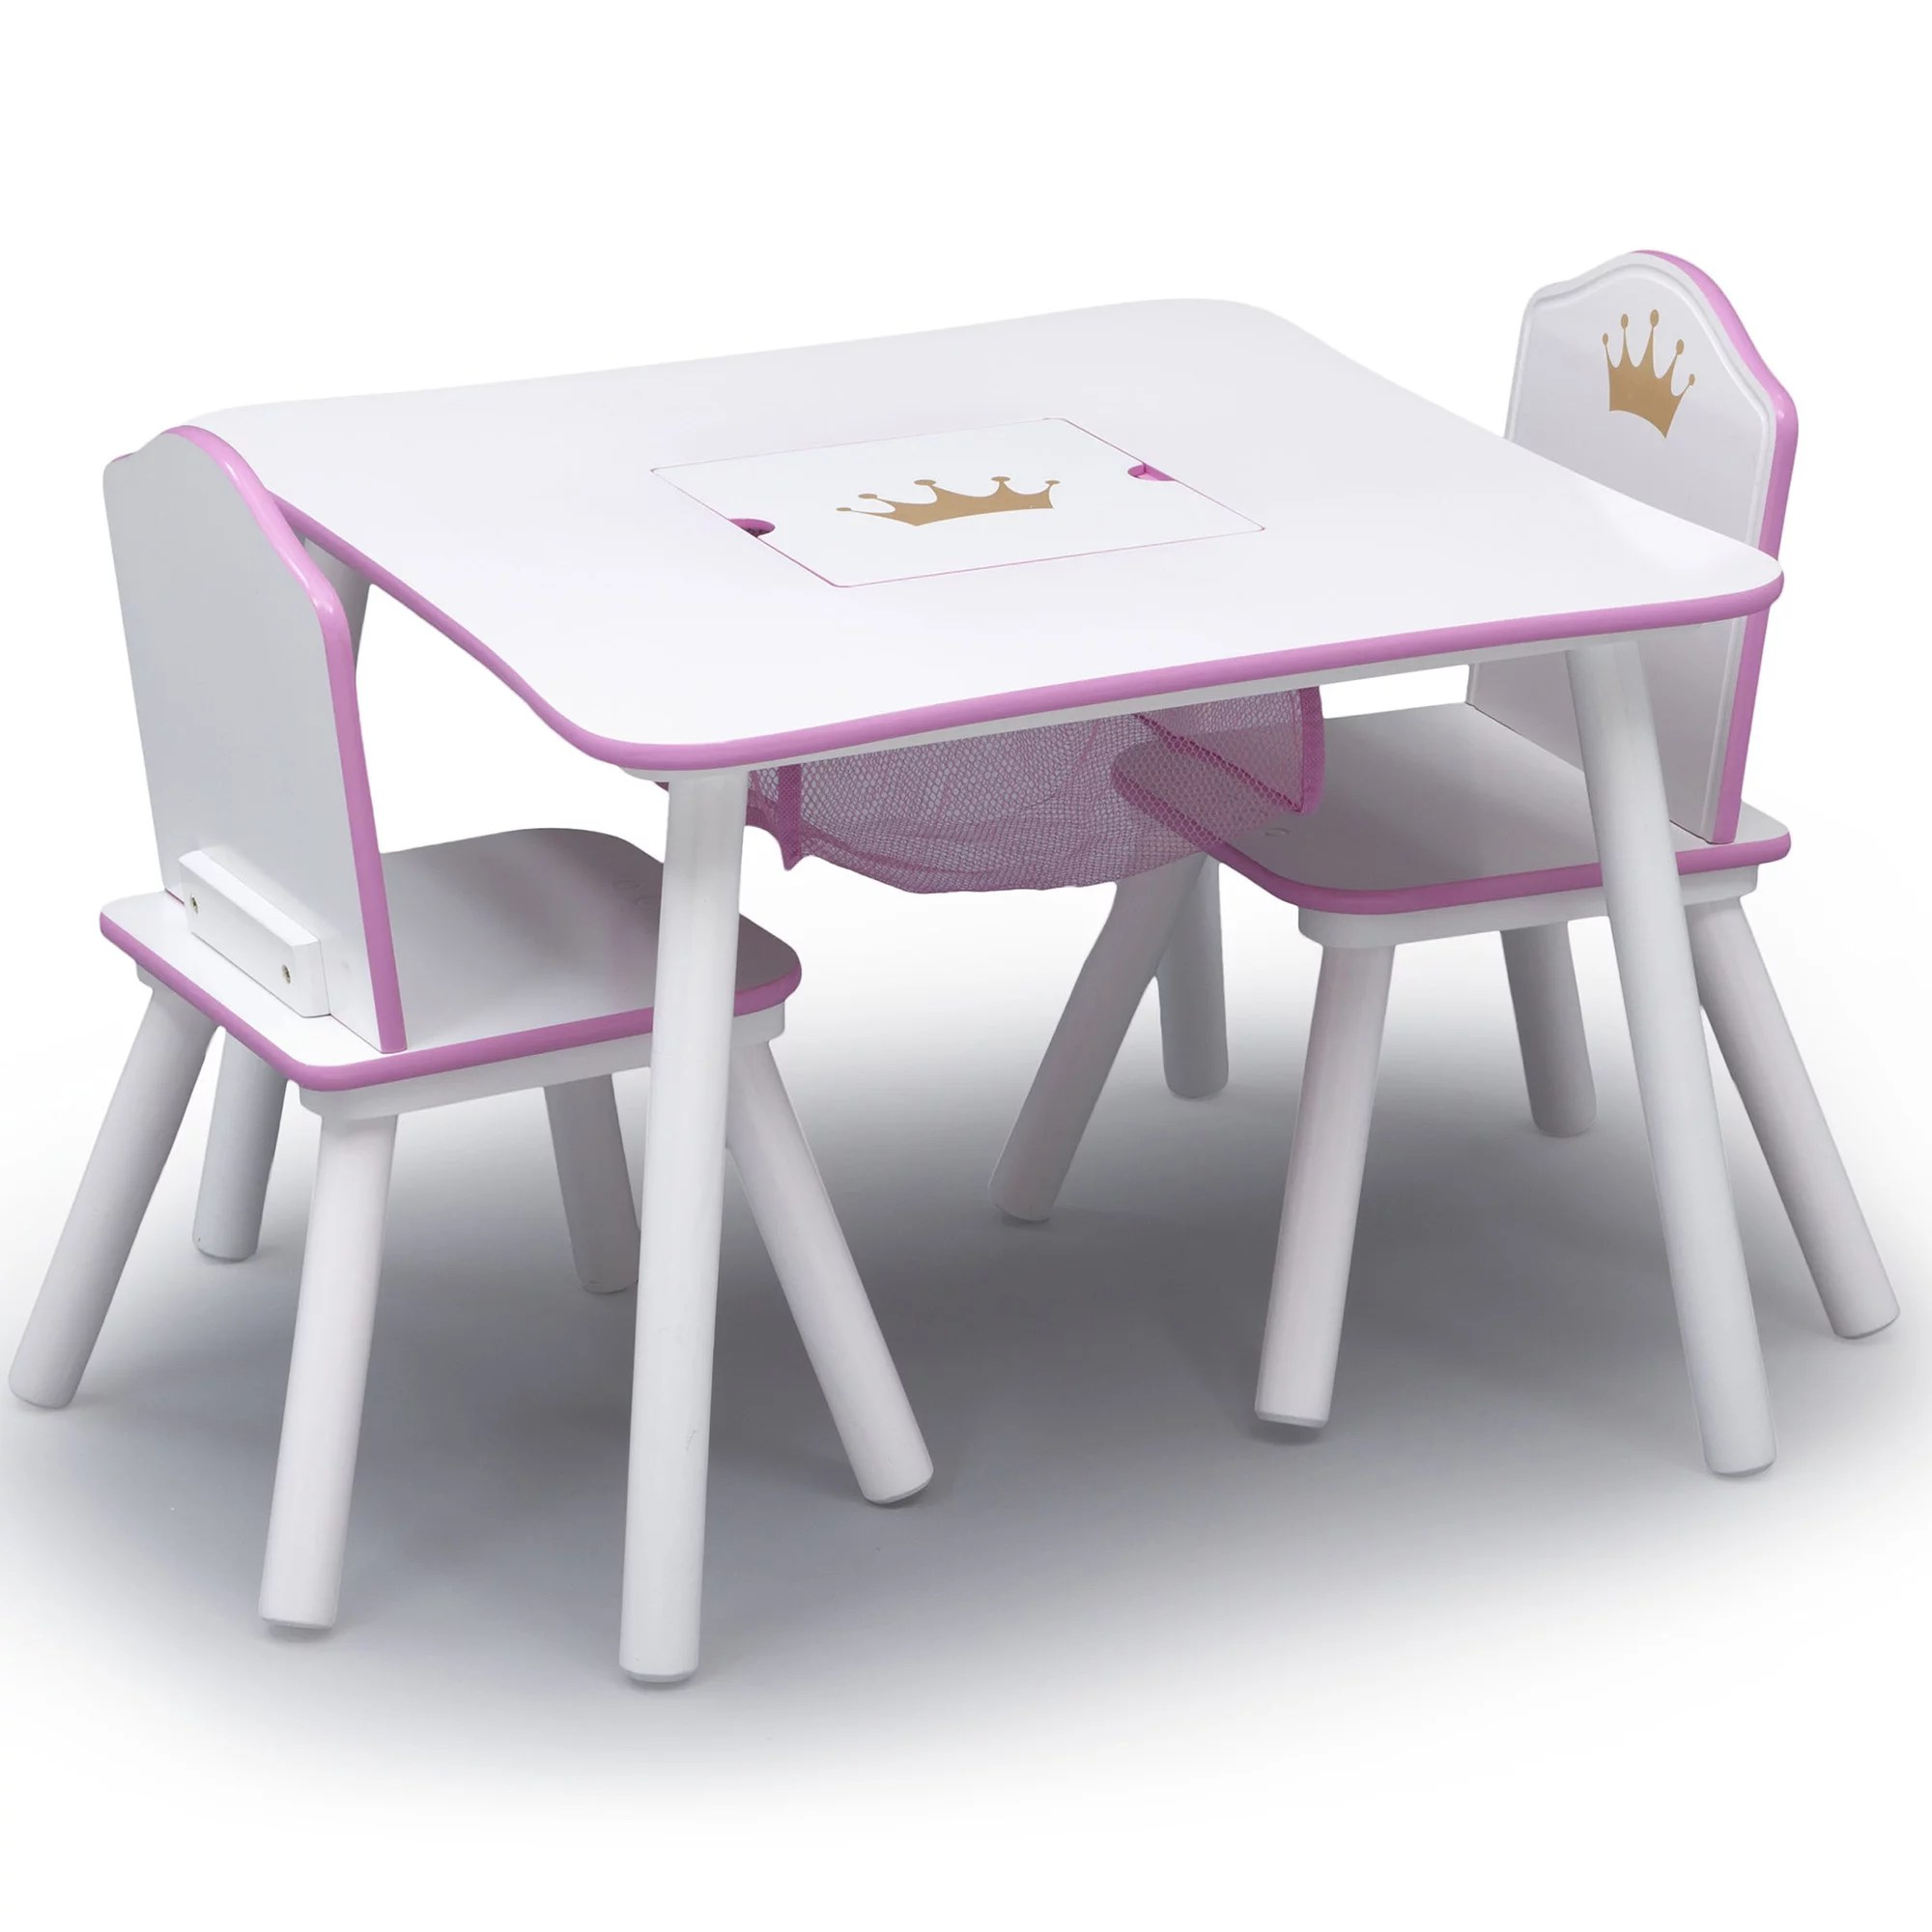 Childrens Table And Chair Set Details About Kids Table Chair Set Children Princess Crown Storage Scratch Resistant Home Pink